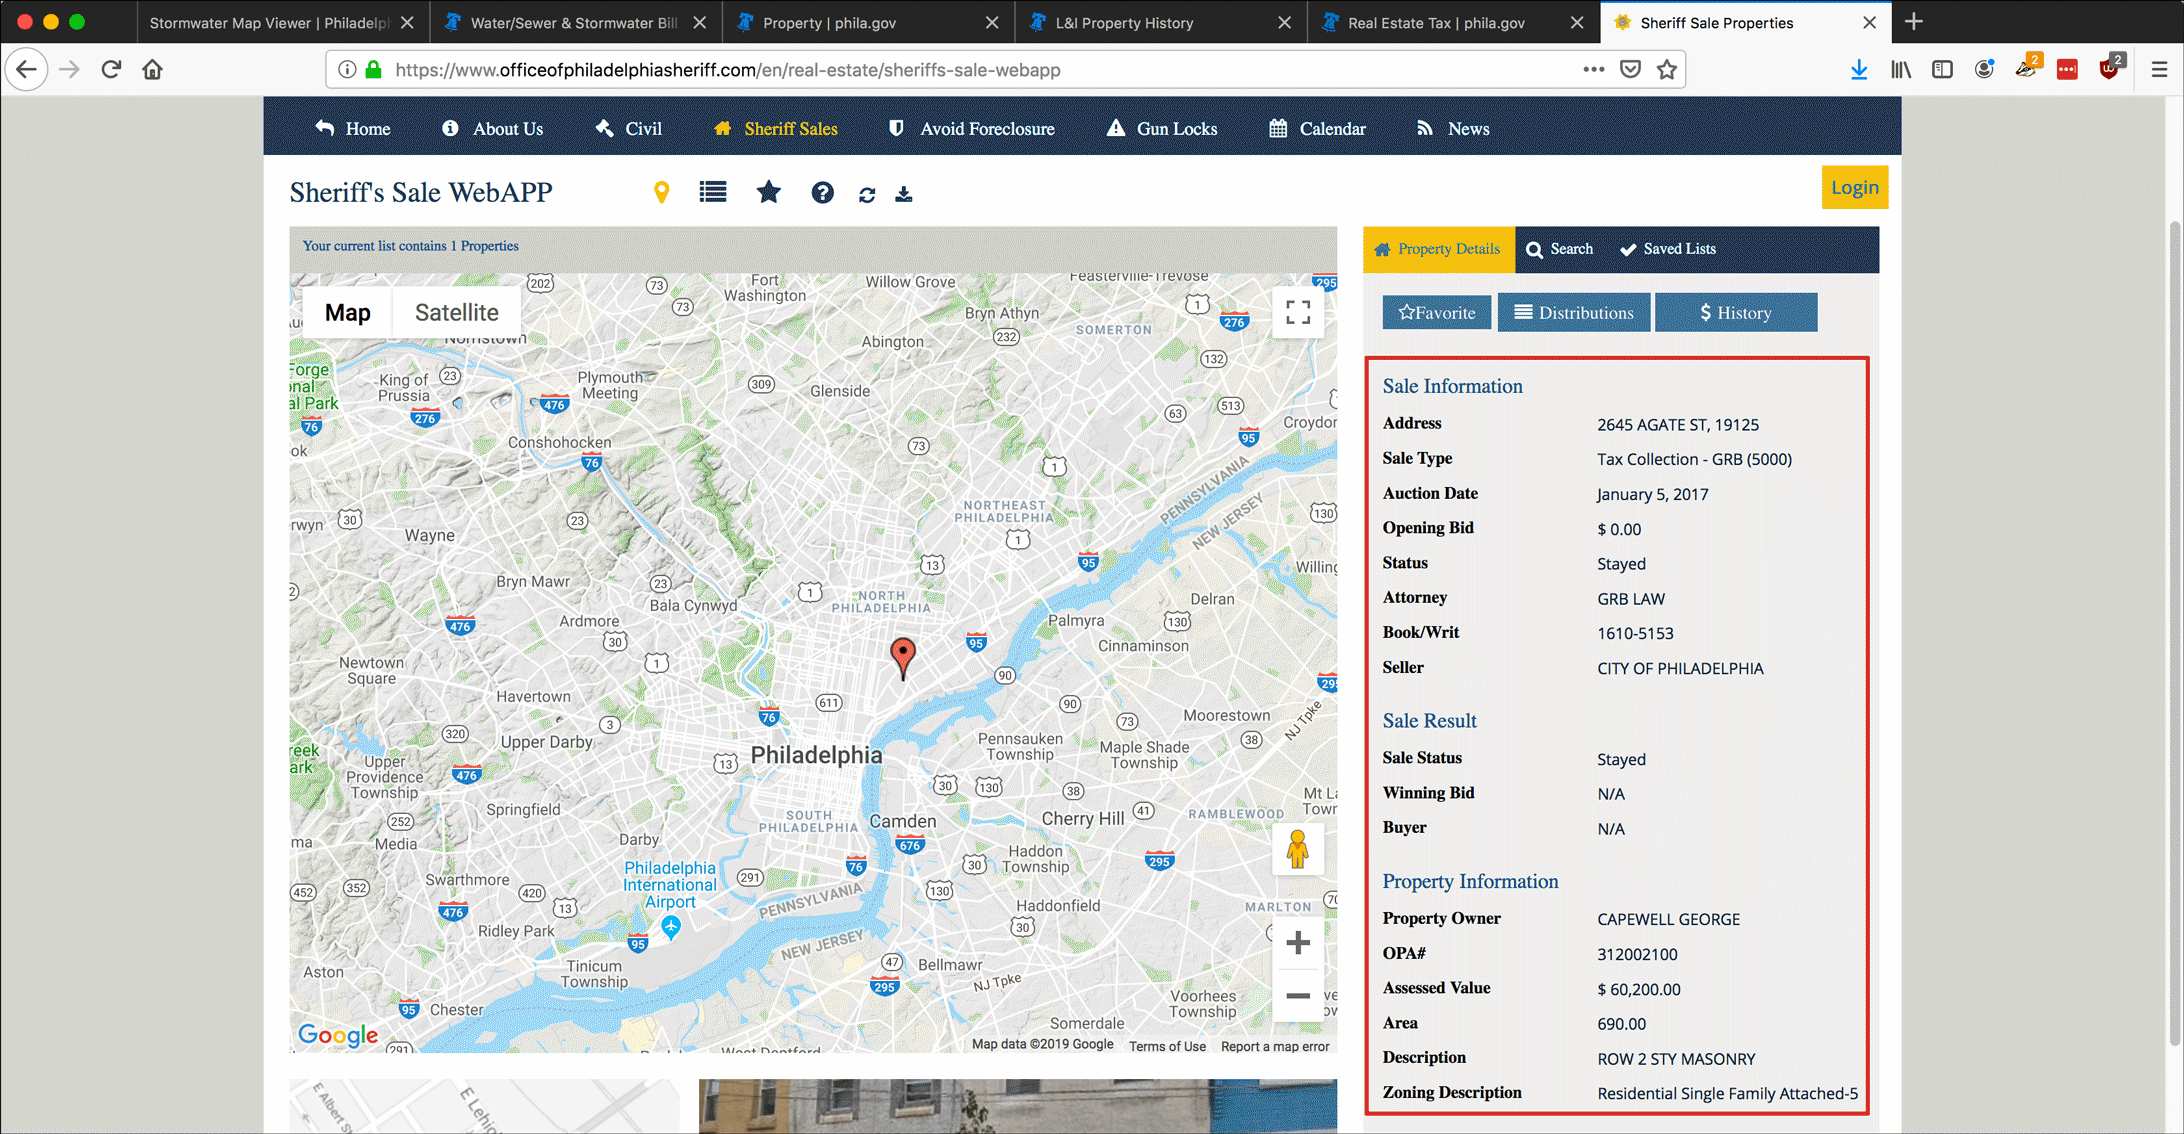 Screenshot illustrating research of property and Sheriff's sale information on the Philadelphia Sheriff's website.